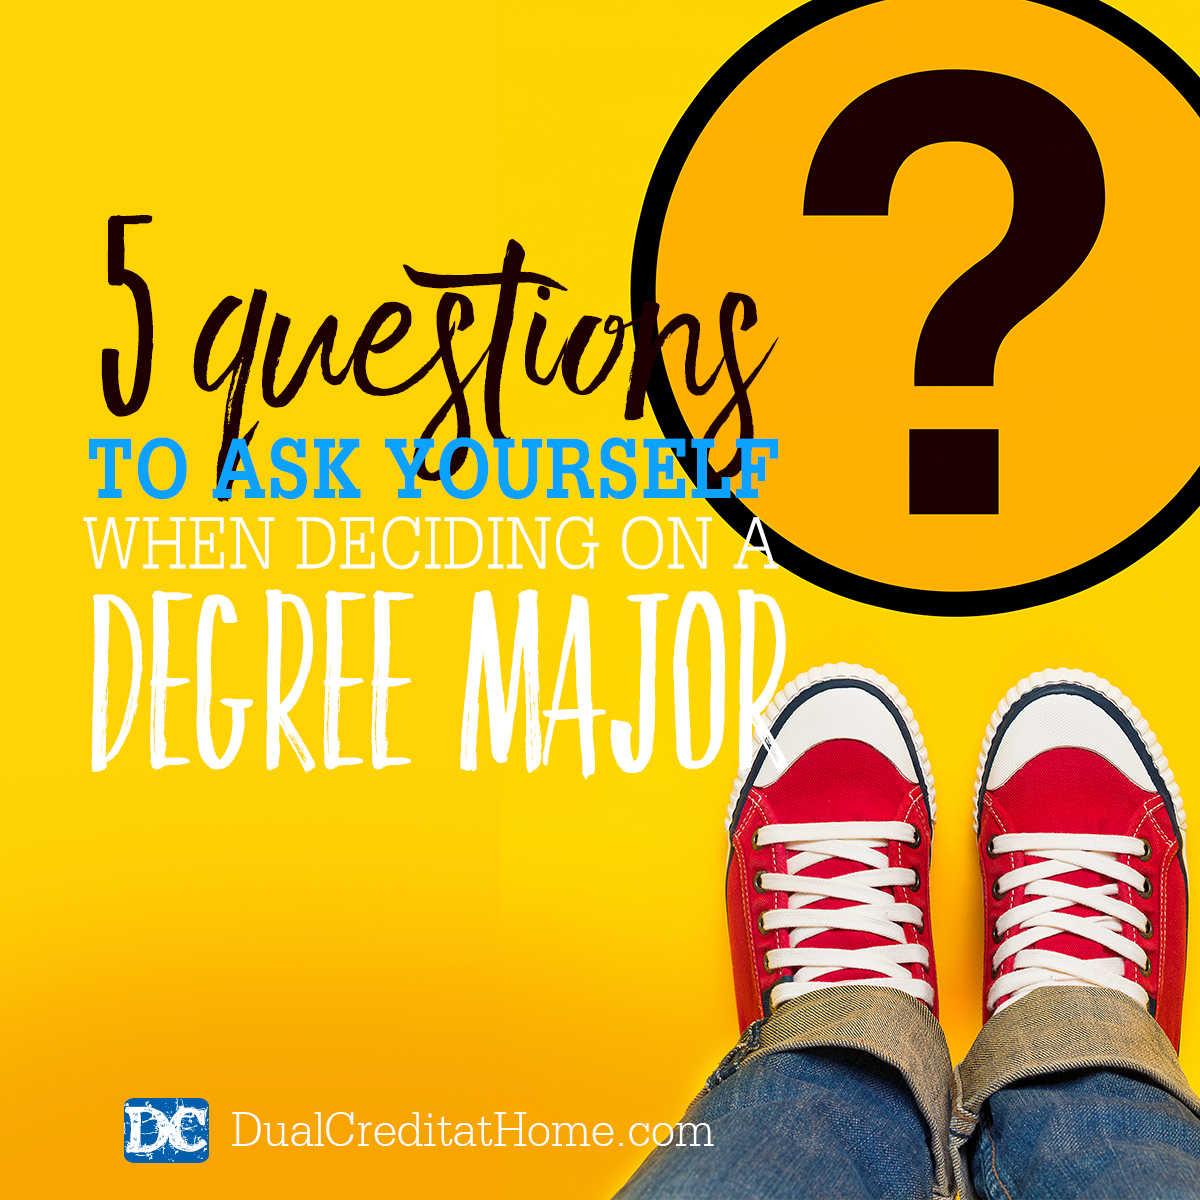 5 Questions to Ask Yourself When Deciding on a Degree Major